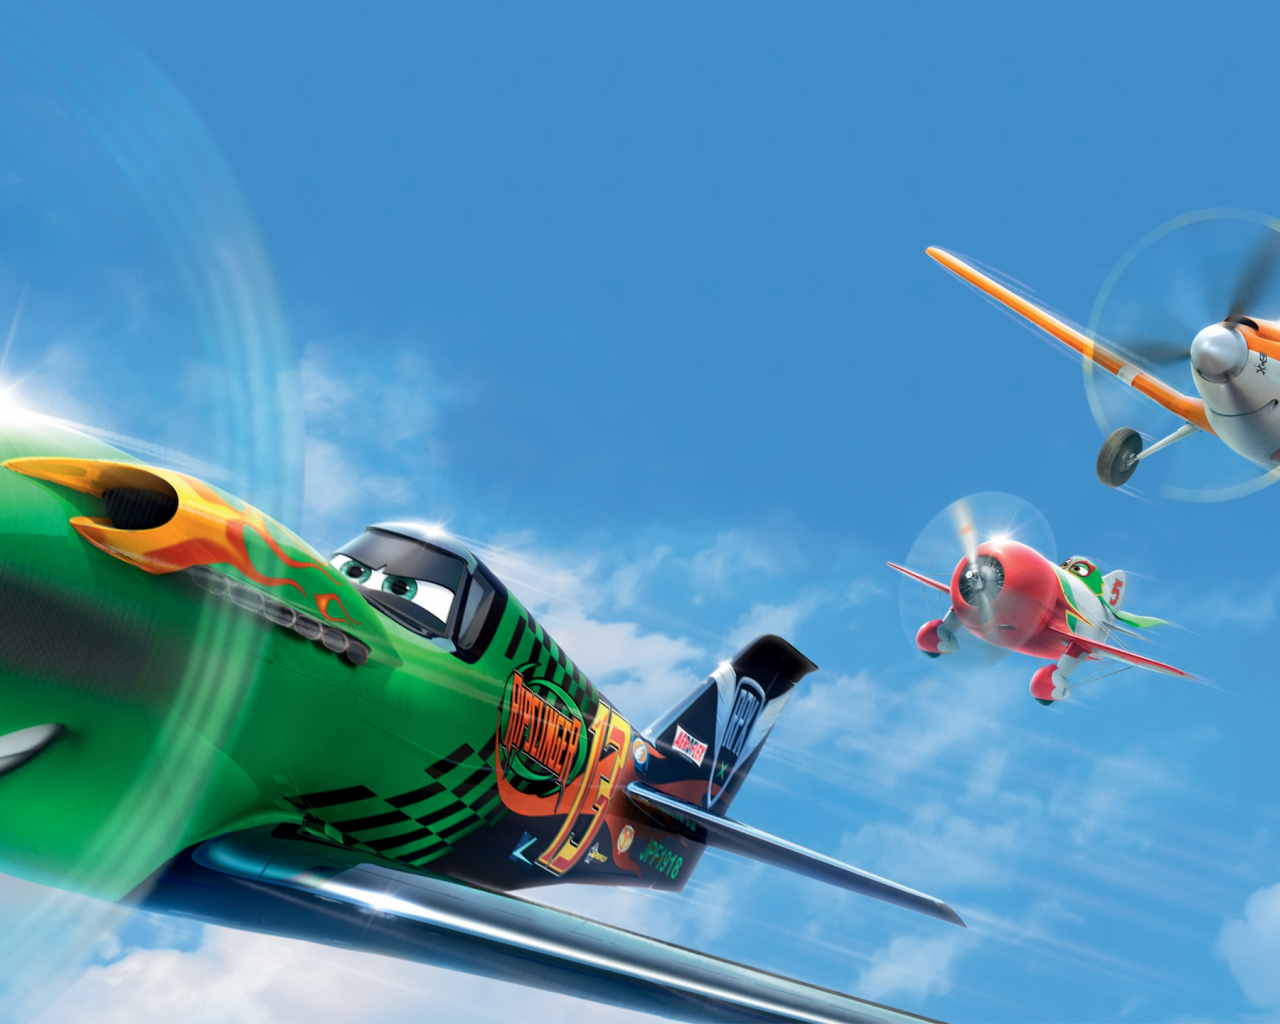 Free Download Disney Planes Movie Hd Wallpaper Ihd Wallpapers 2560x1440 For Your Desktop Mobile Tablet Explore 48 Disney Movies Wallpaper Disney Character Wallpapers Disney Wallpaper Hd Cool Disney Wallpaper